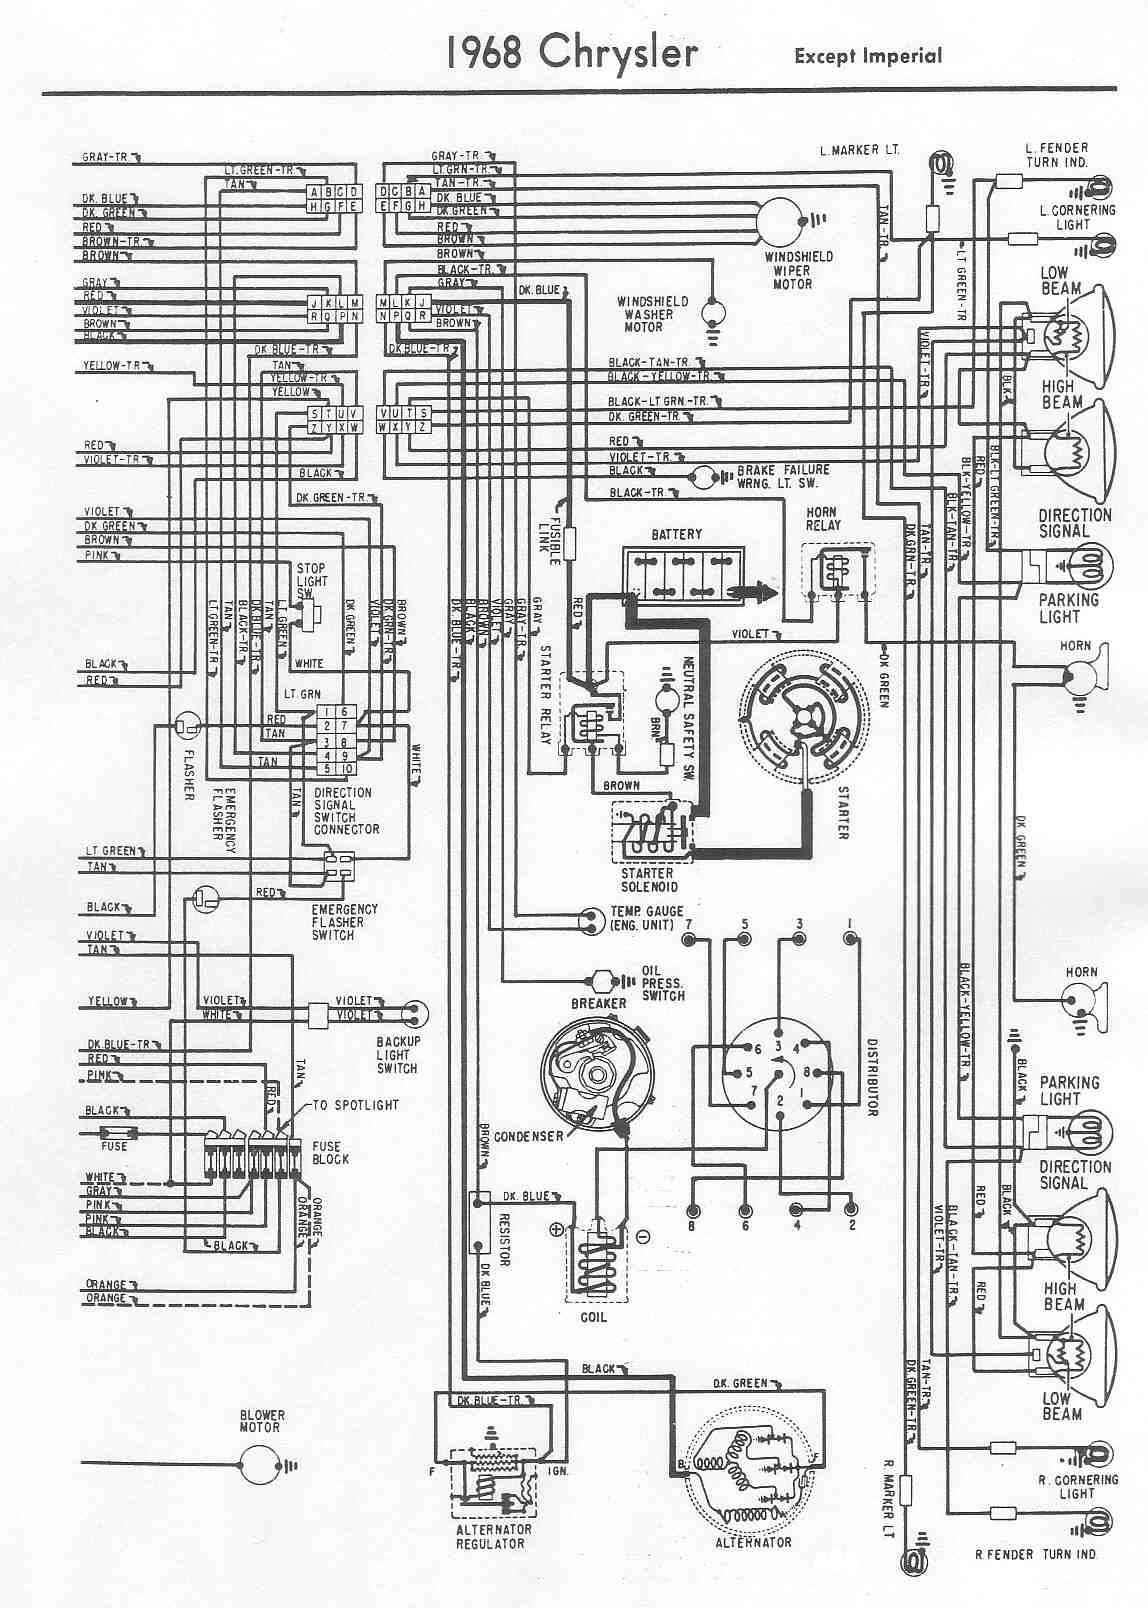 Chrysler 440 Wiring Diagram Free For You 2000 Town And Country Trailer 1965 Dodge Coronet Dash 300 Schematics Automotive Symbols